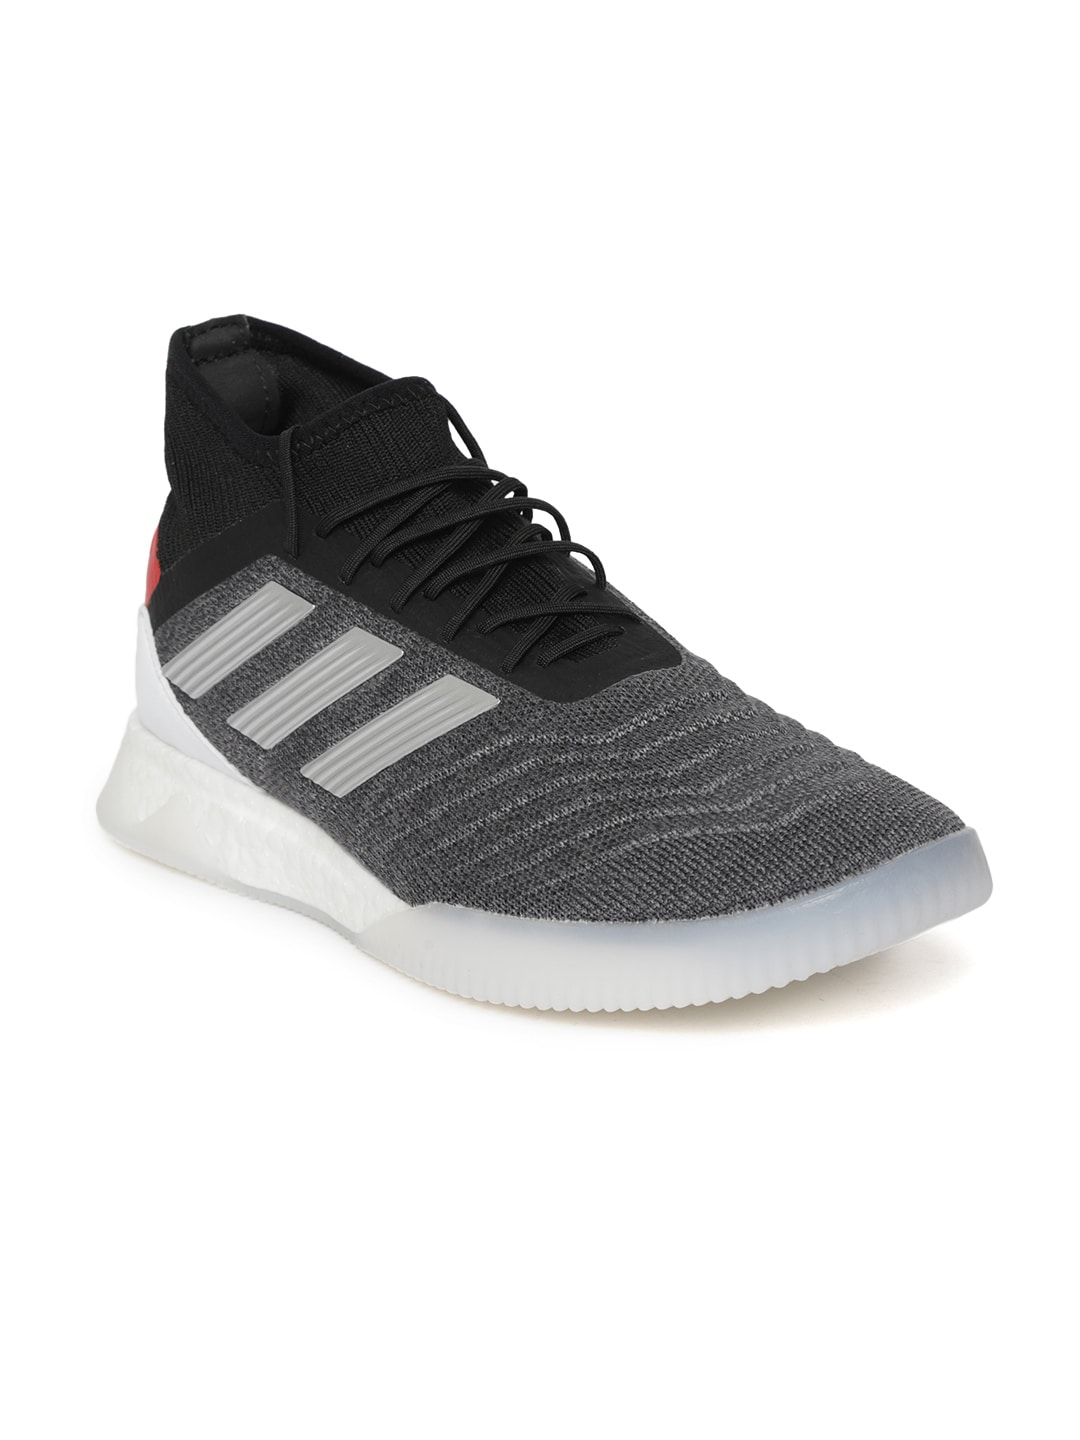 brand new 9d631 a01a7 Adidas White Shoes - Buy Adidas White Shoes Online in India